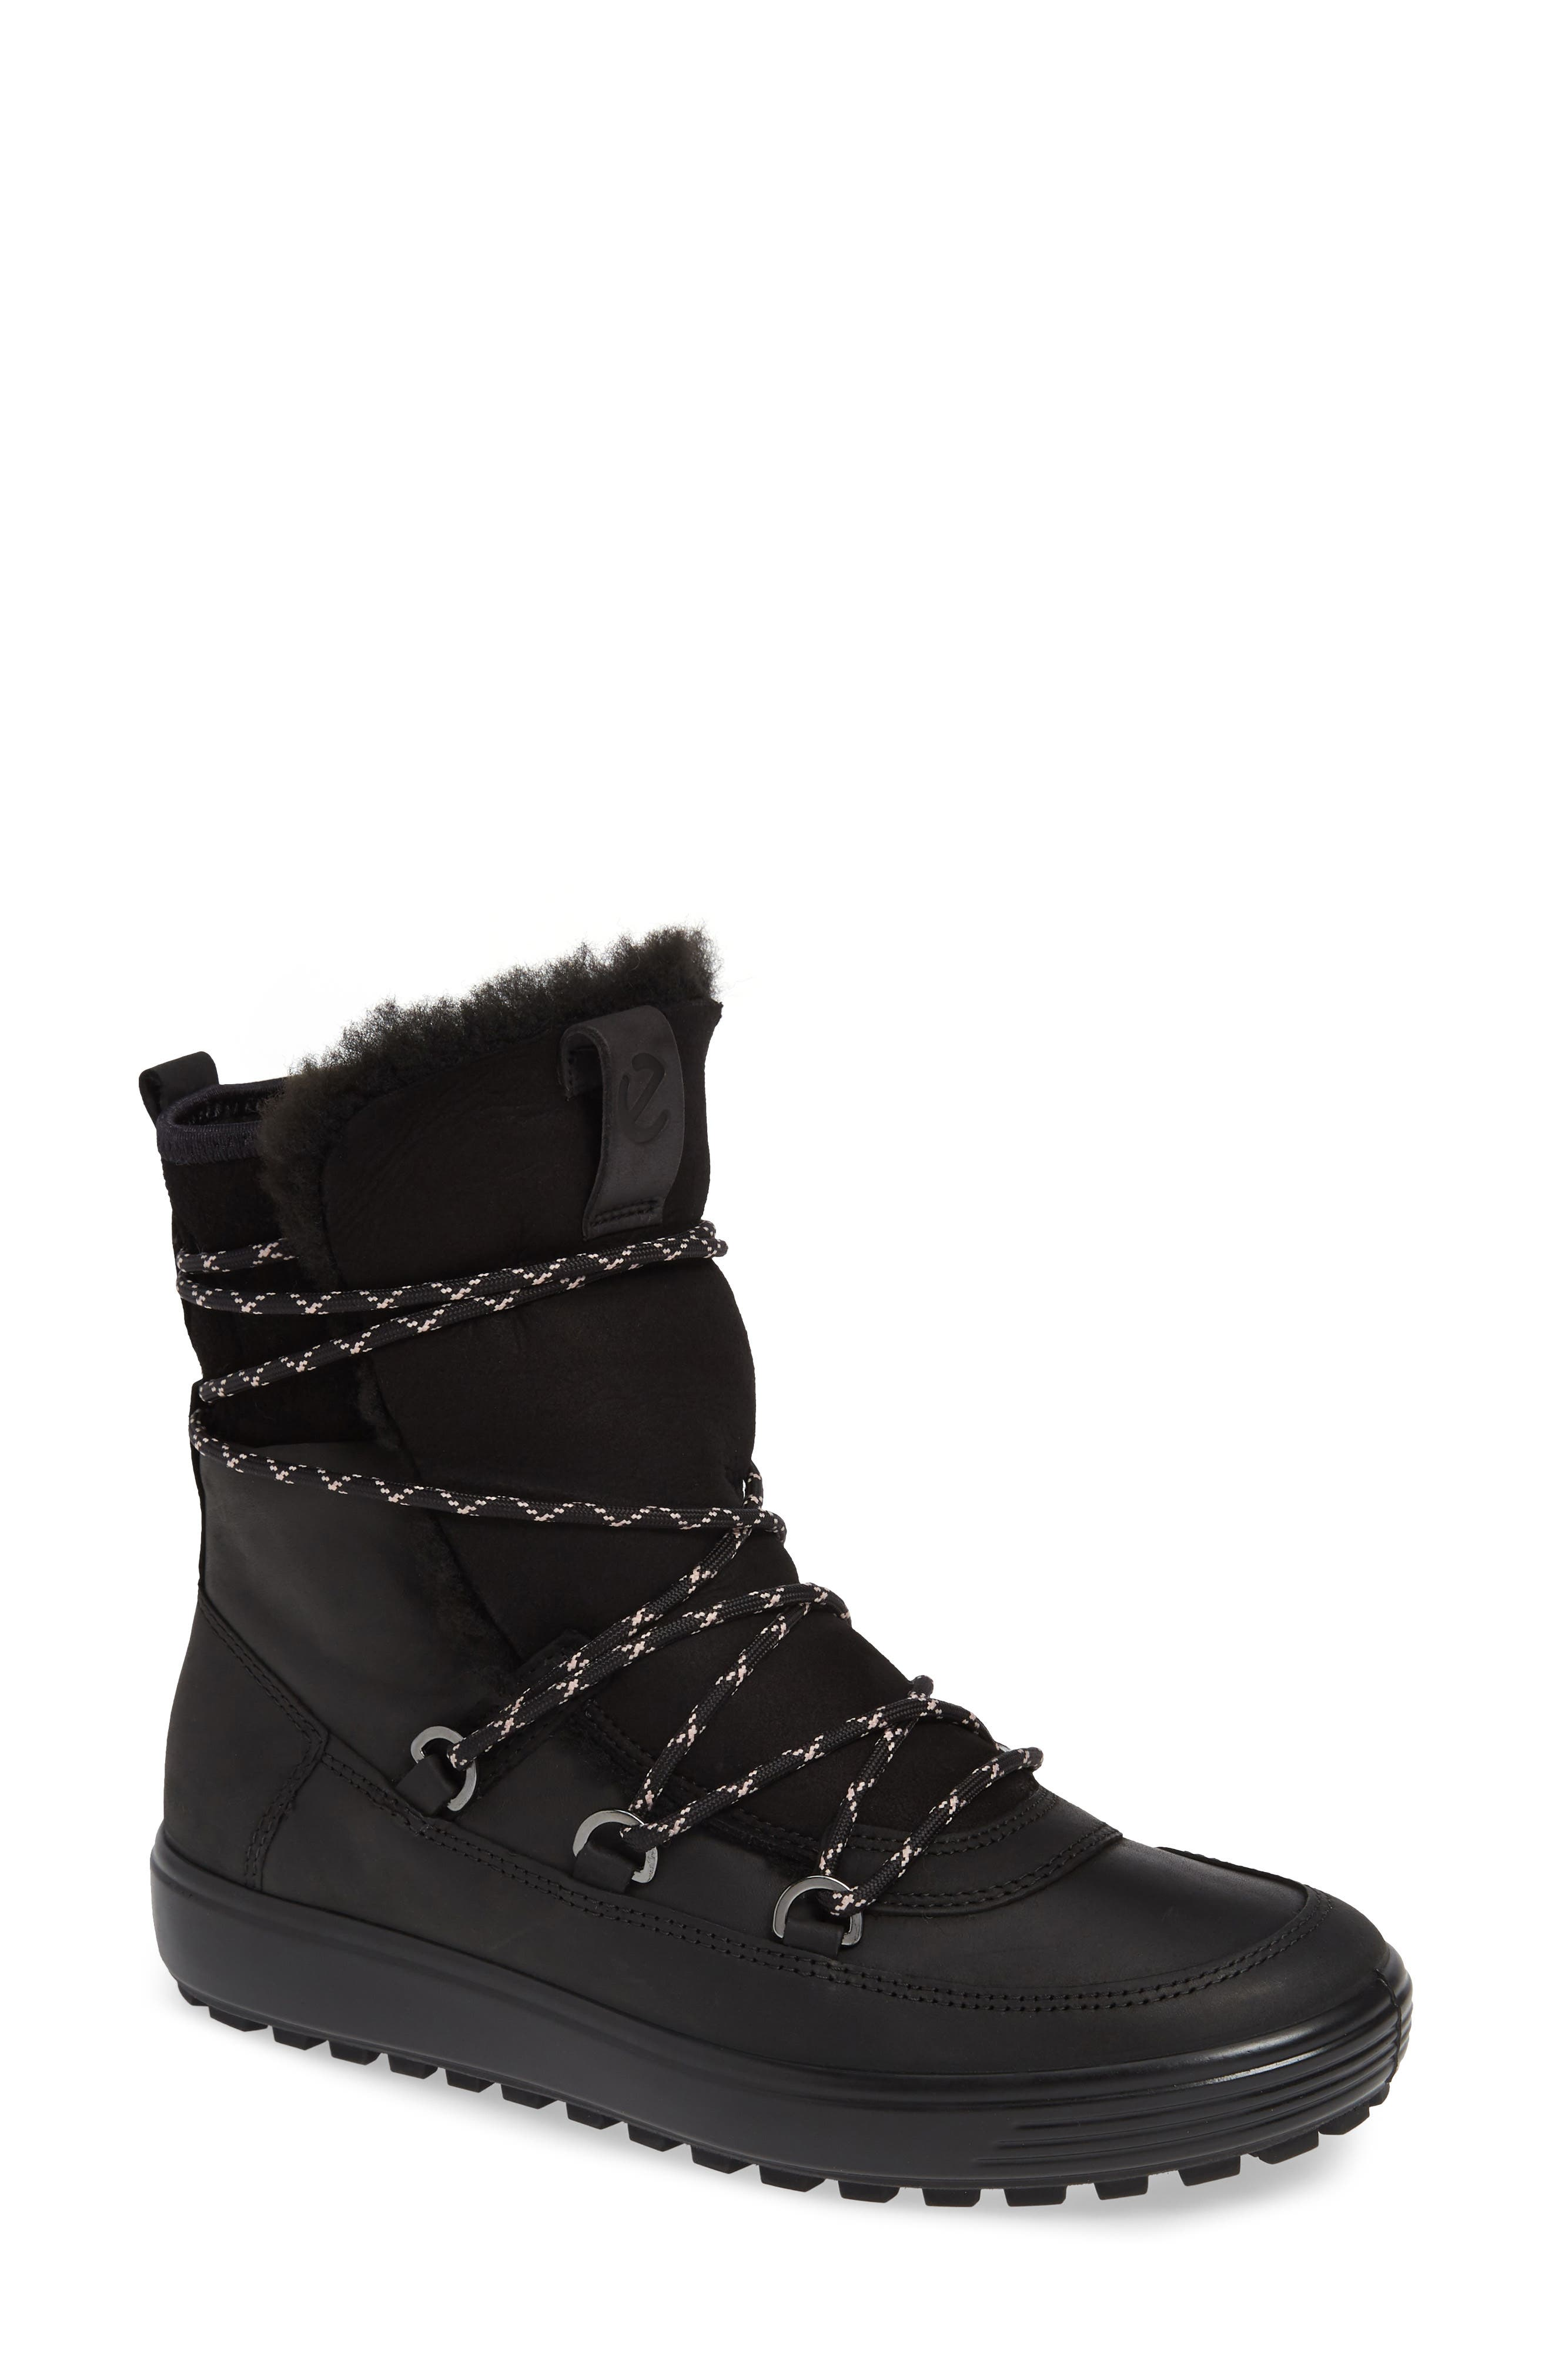 Ecco Soft 7 Tred Waterproof Genuine Shearling Lined Bootie, Black